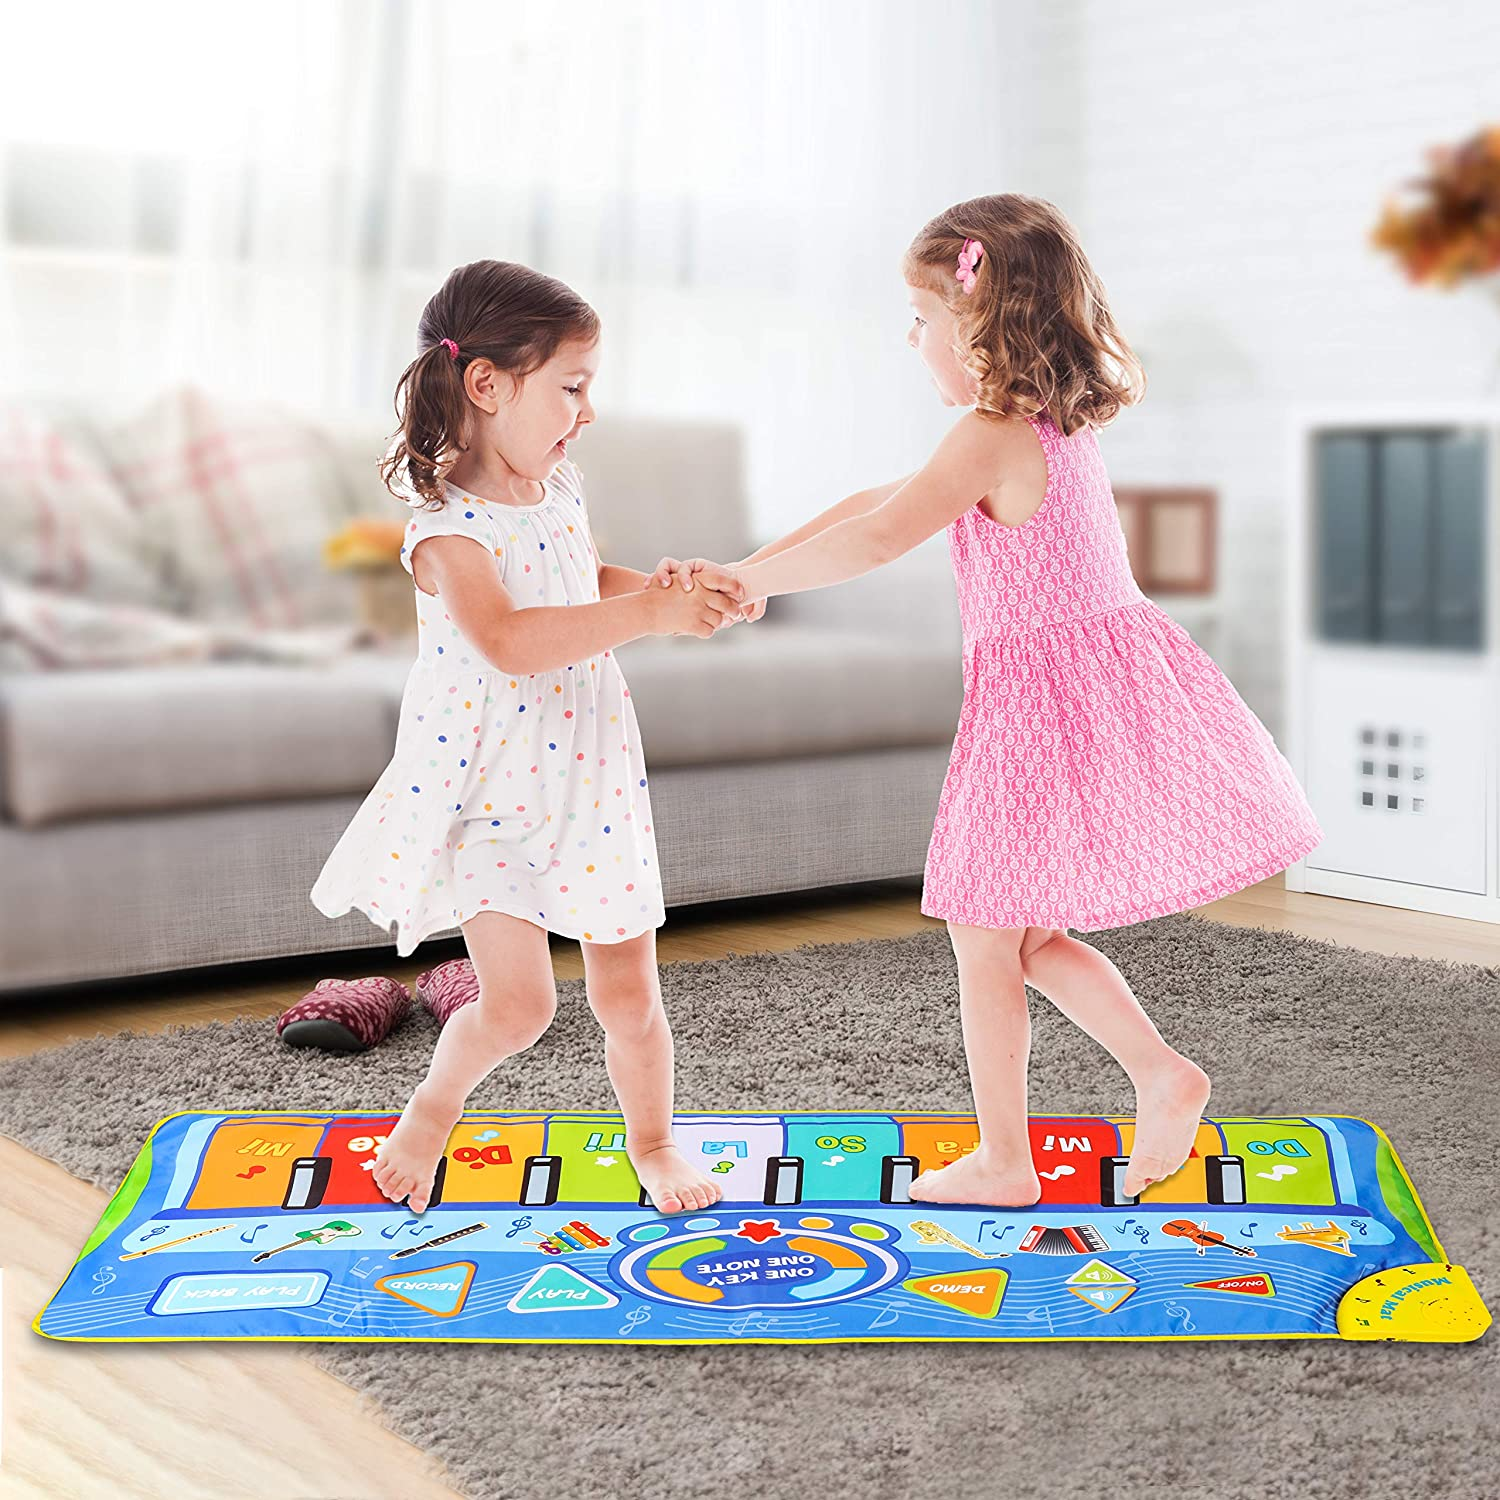 Birthday Christmas Easter Day Gift for Kids Toddler Girls Boys 50 x 18.5 inches Play -Record -Playback -Demo-OKOT-Mode Musical Piano Mat Piano Keyboard Play Mat with 8 Musical Instruments